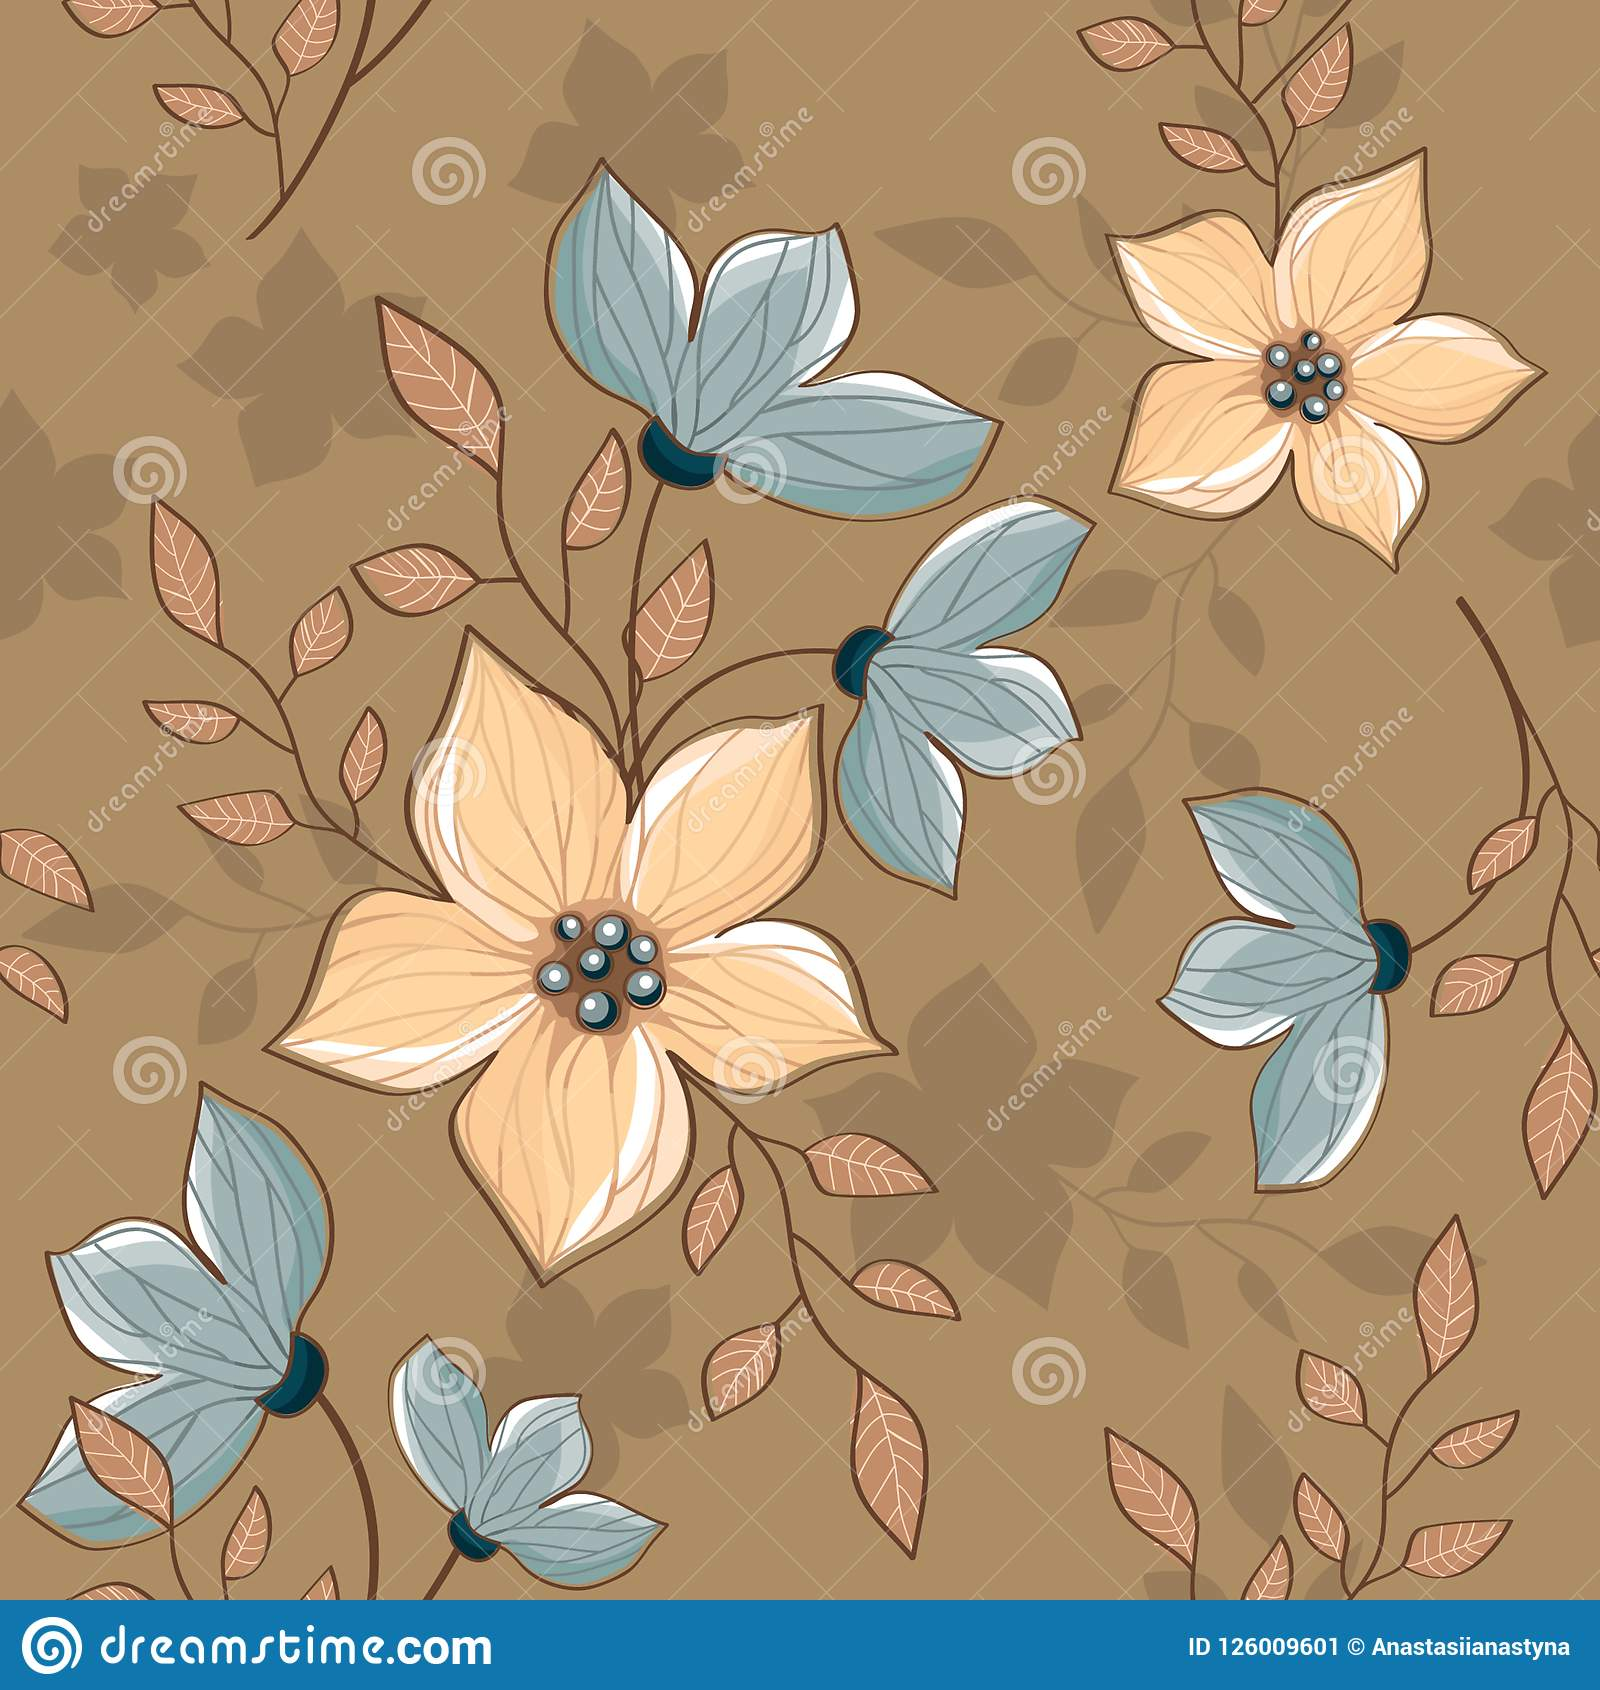 Seamless vintage decorative periwinkle pattern